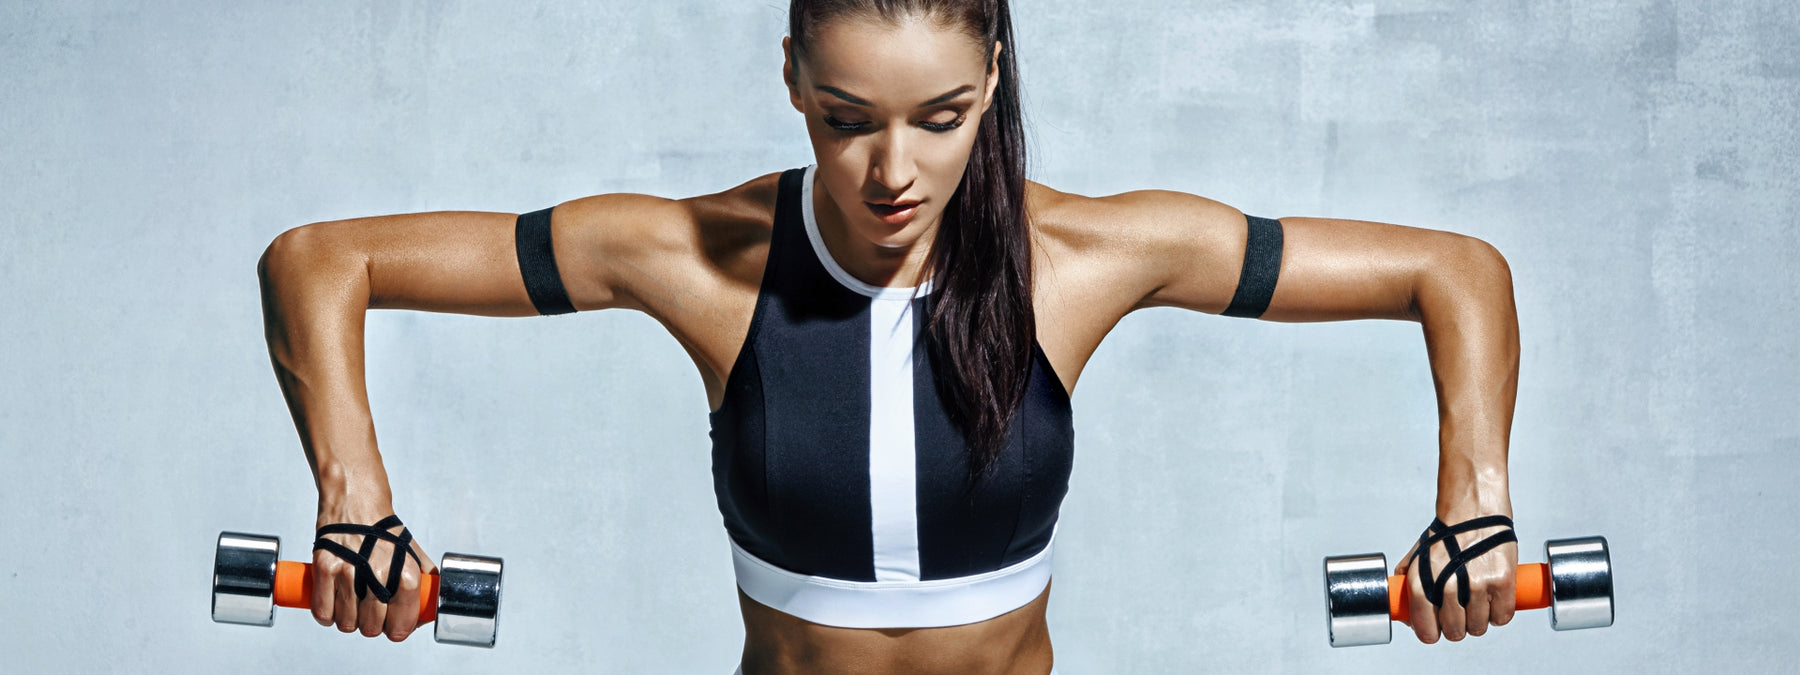 20 Fit Celebrities You Must Follow on Instagram